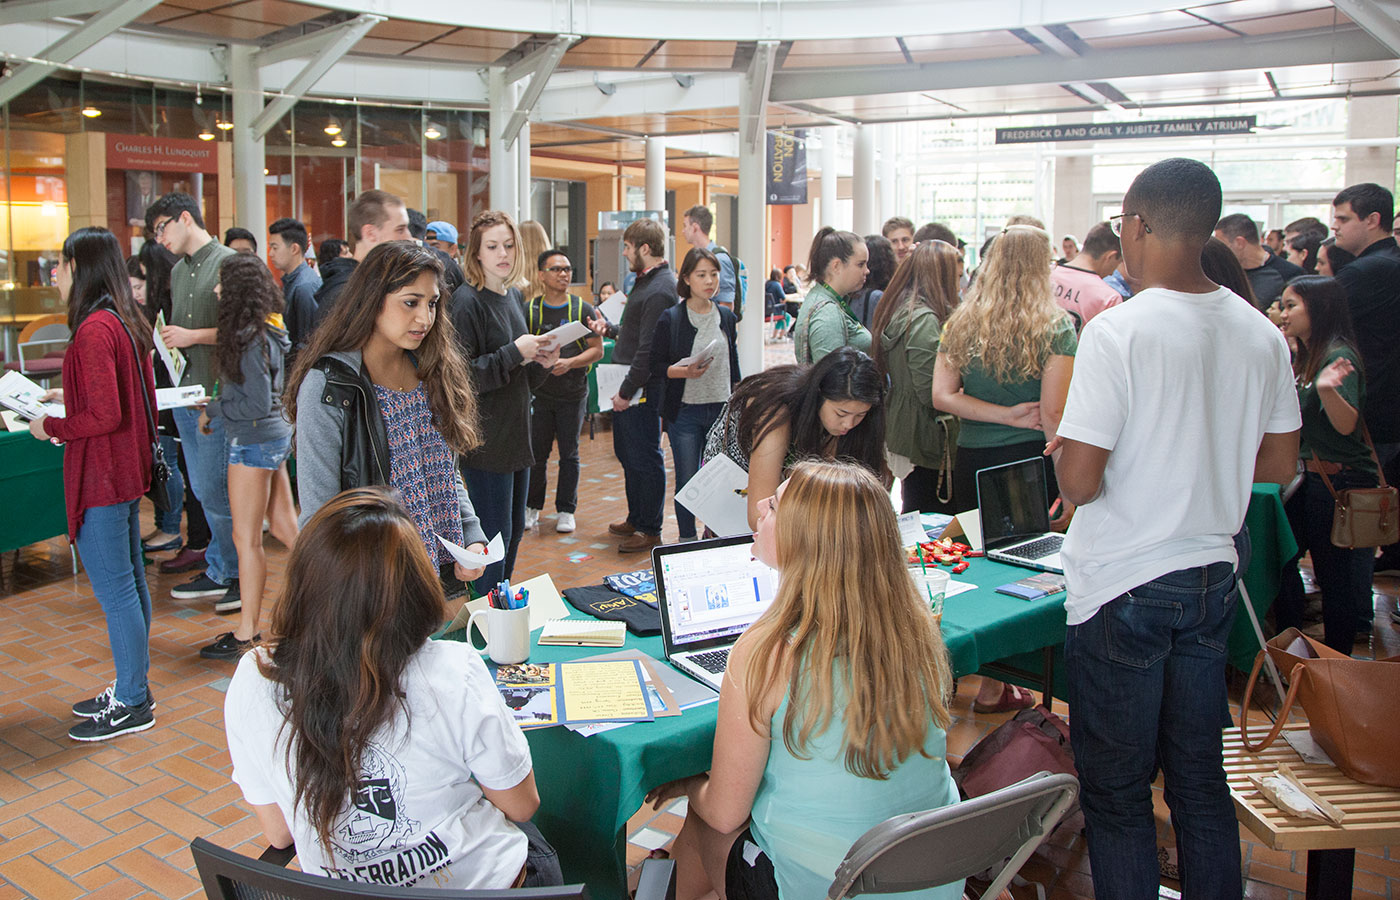 Students in a crowded career fair.